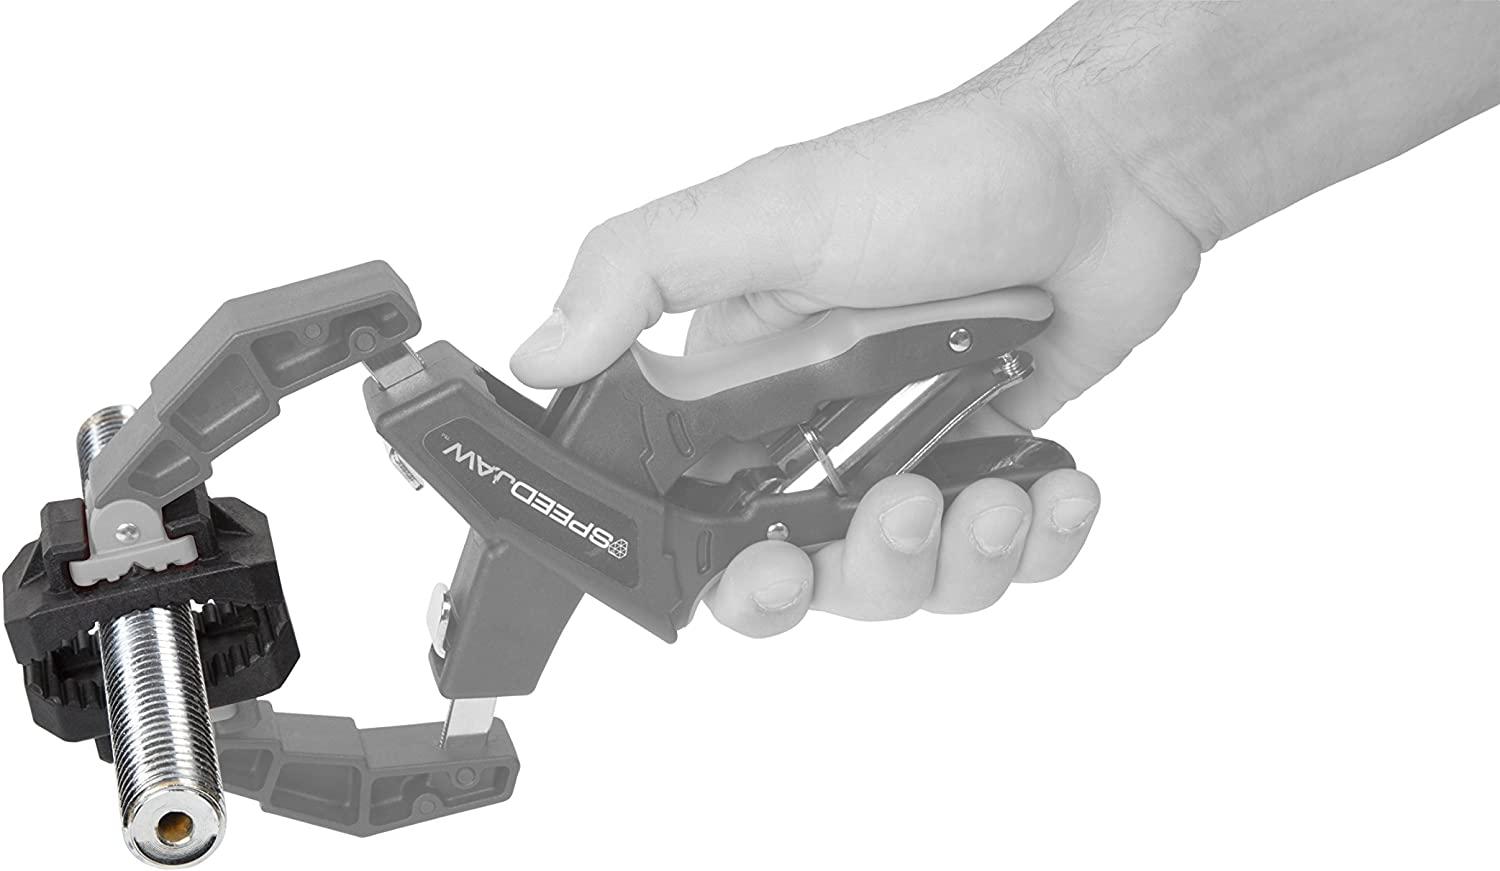 SPEEDJAW 94036 Adjustable Locking Hand Clamp with Quick-Release